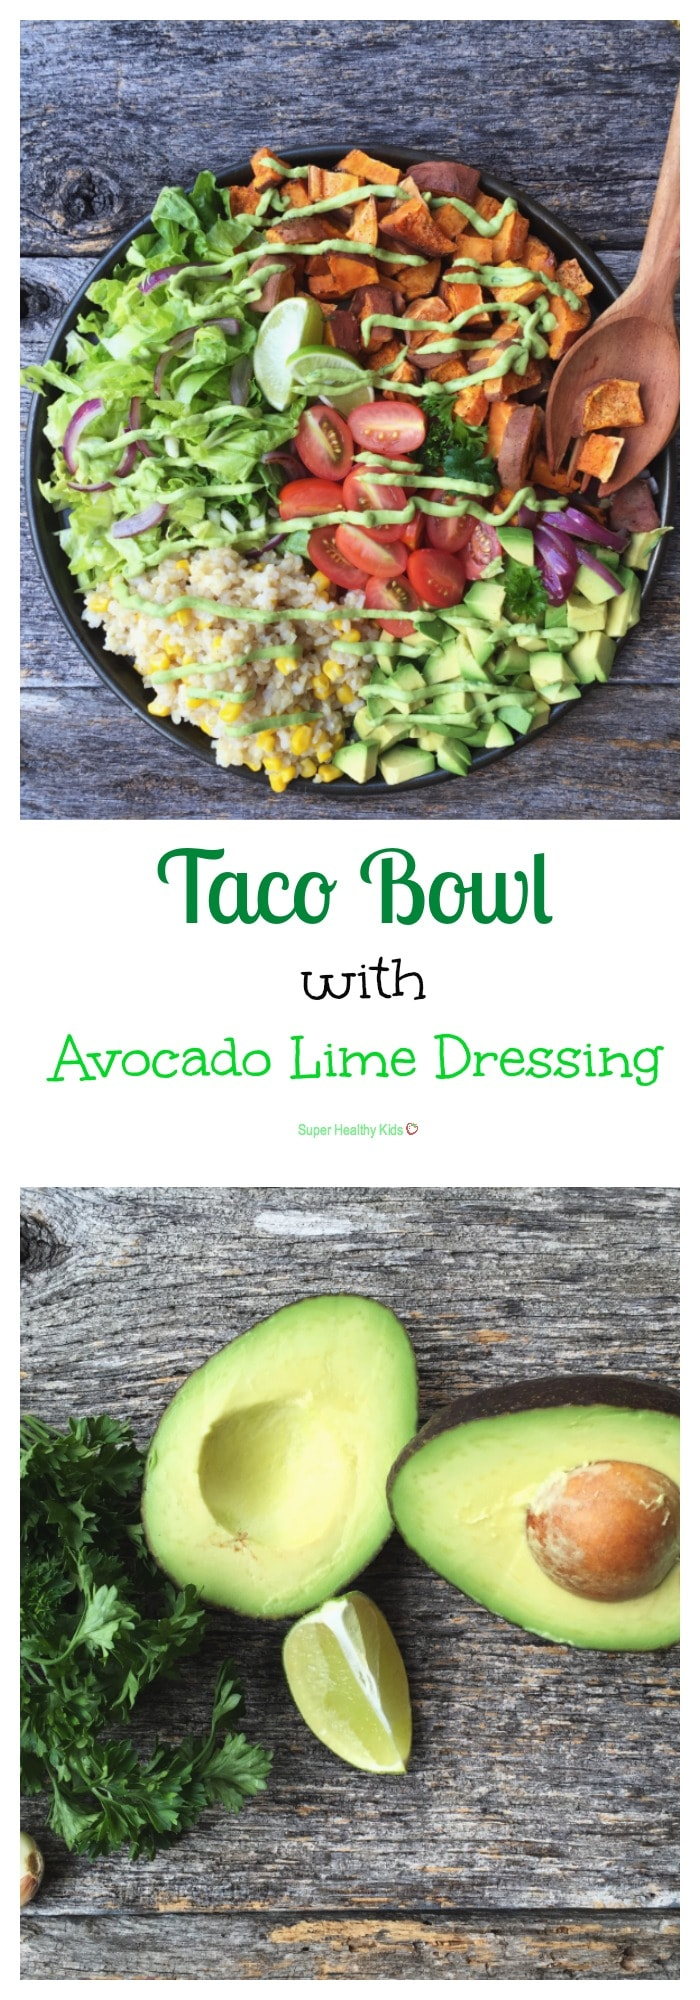 Taco Bowl with Avocado Lime Dressing. Move aside Cafe Rio! This taco bowl is fresh, amazingly delicious and can be made right in the comfort of your own kitchen! http://www.superhealthykids.com/taco-bowl-avocado-lime-dressing/